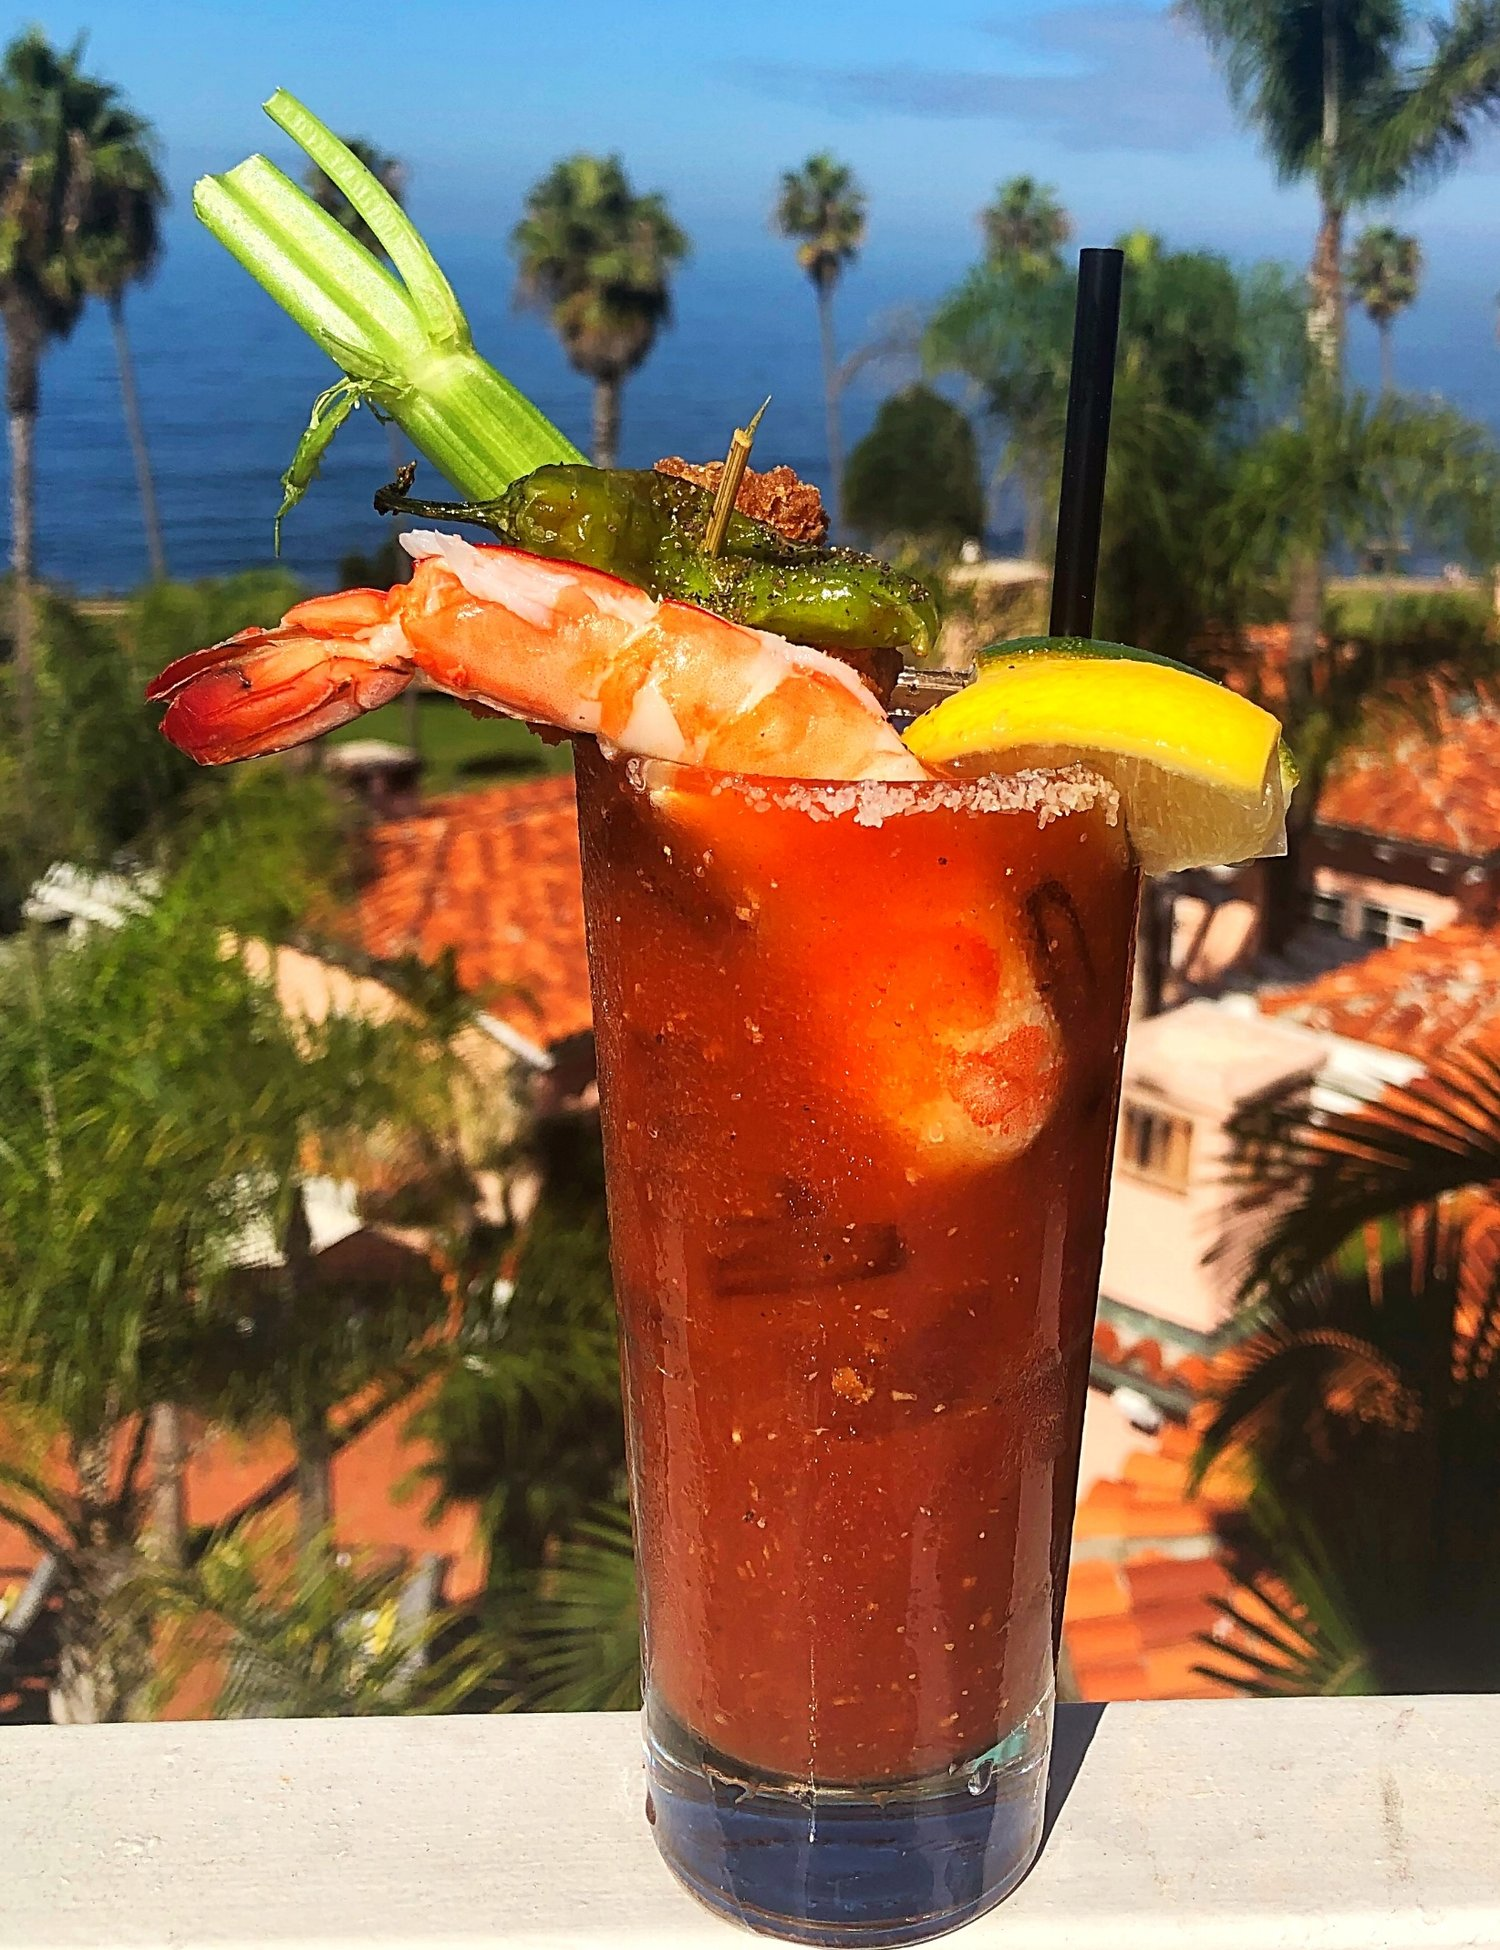 la+valencia+hotel+best+bloody+marys+in+san+diego boody mary obsessed+in+the+united+states+brunch+beach+breeze+bloodys+la+jolla.jpg